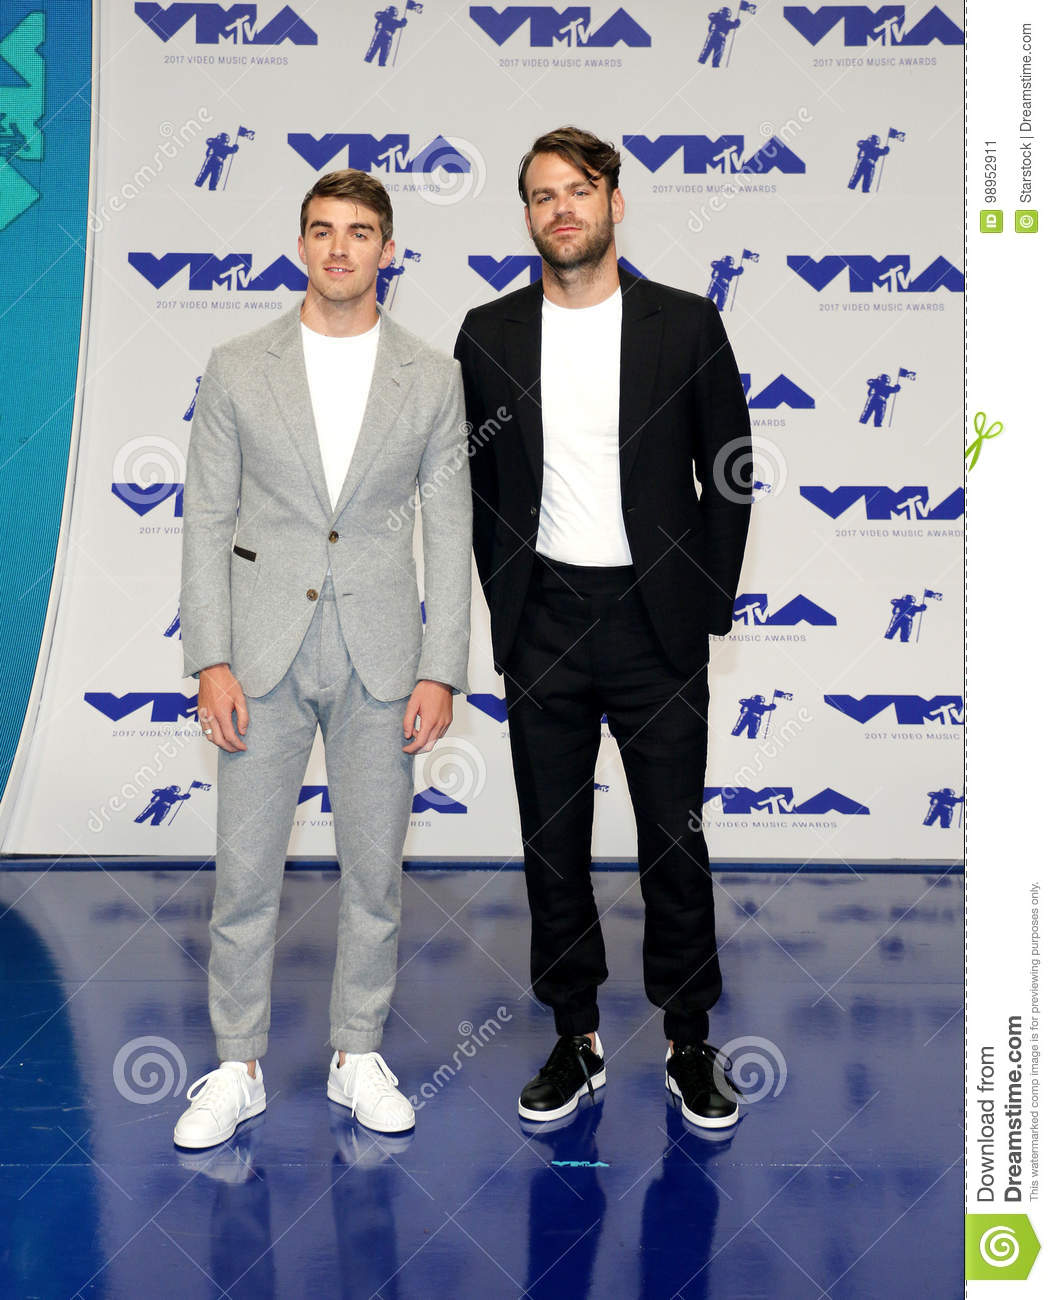 Andrew Taggart e Alex Pall dos Chainsmokers